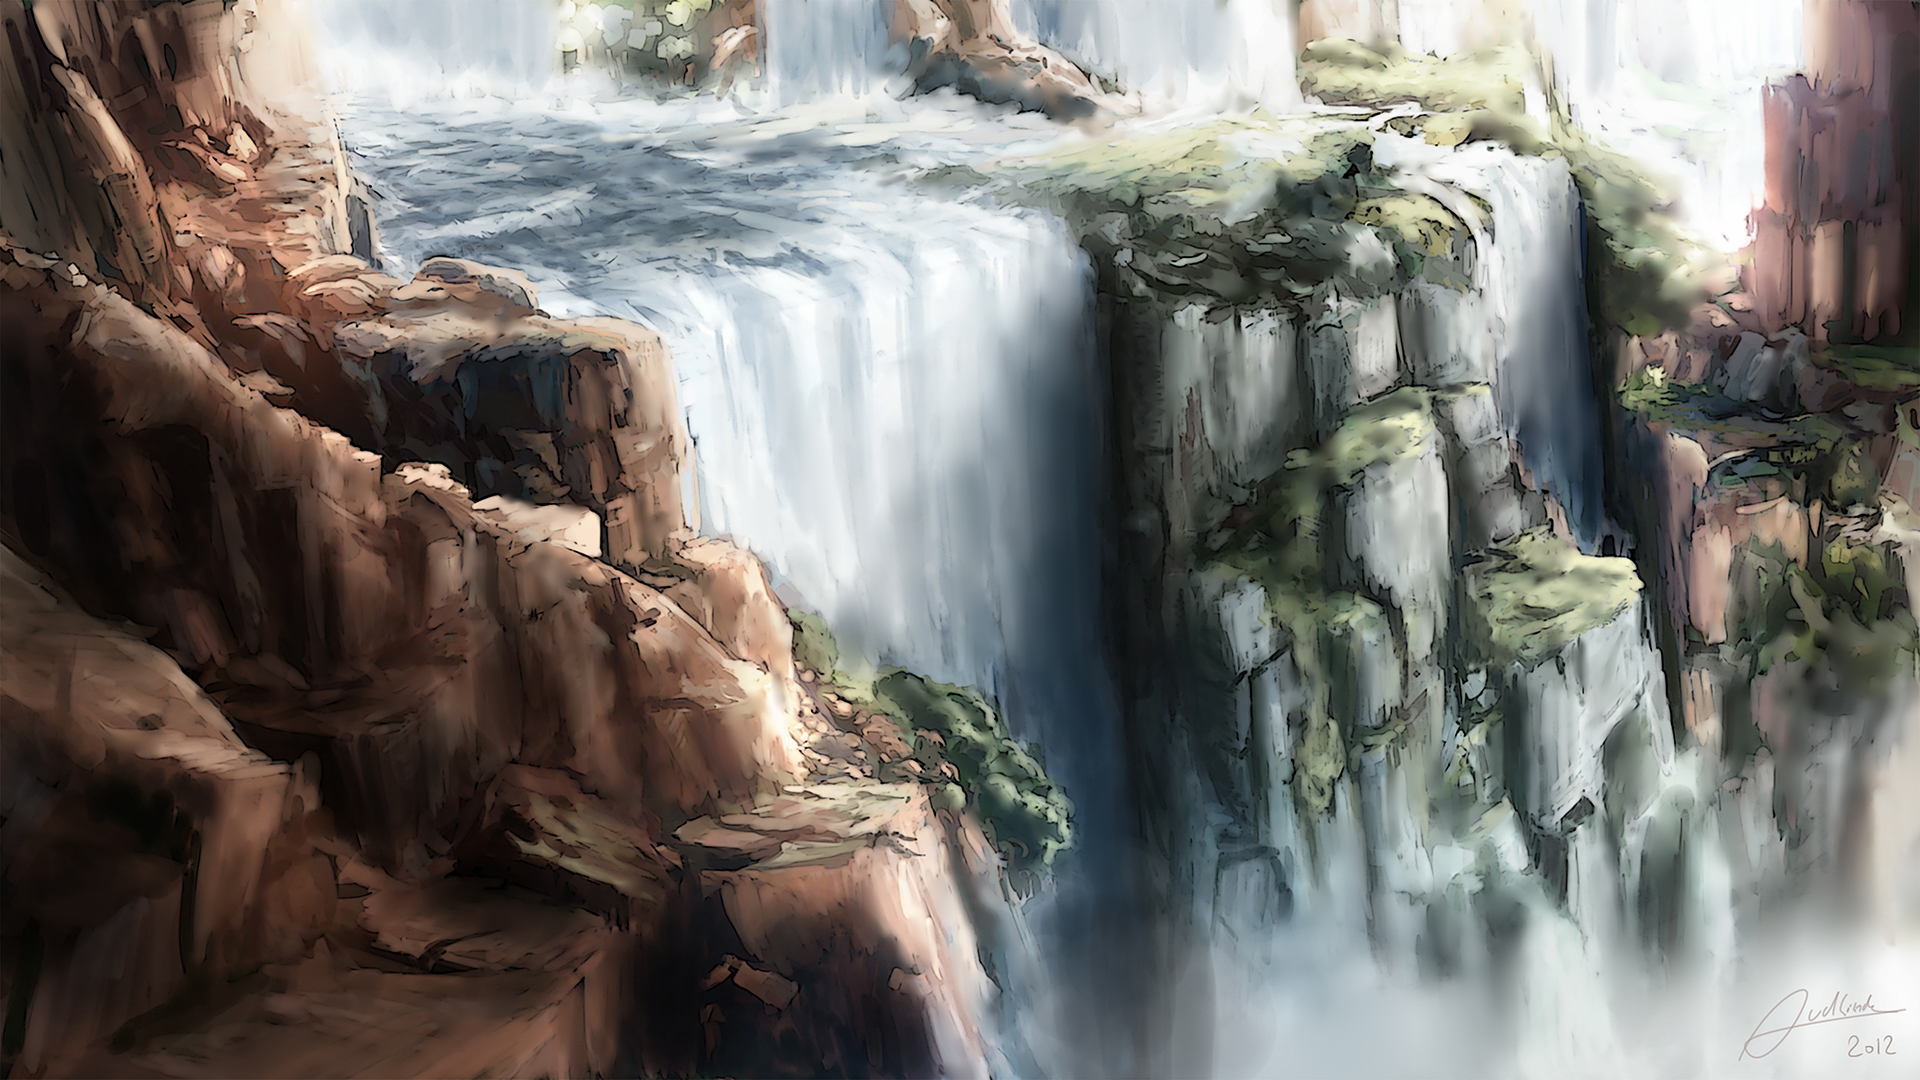 The Water Falls